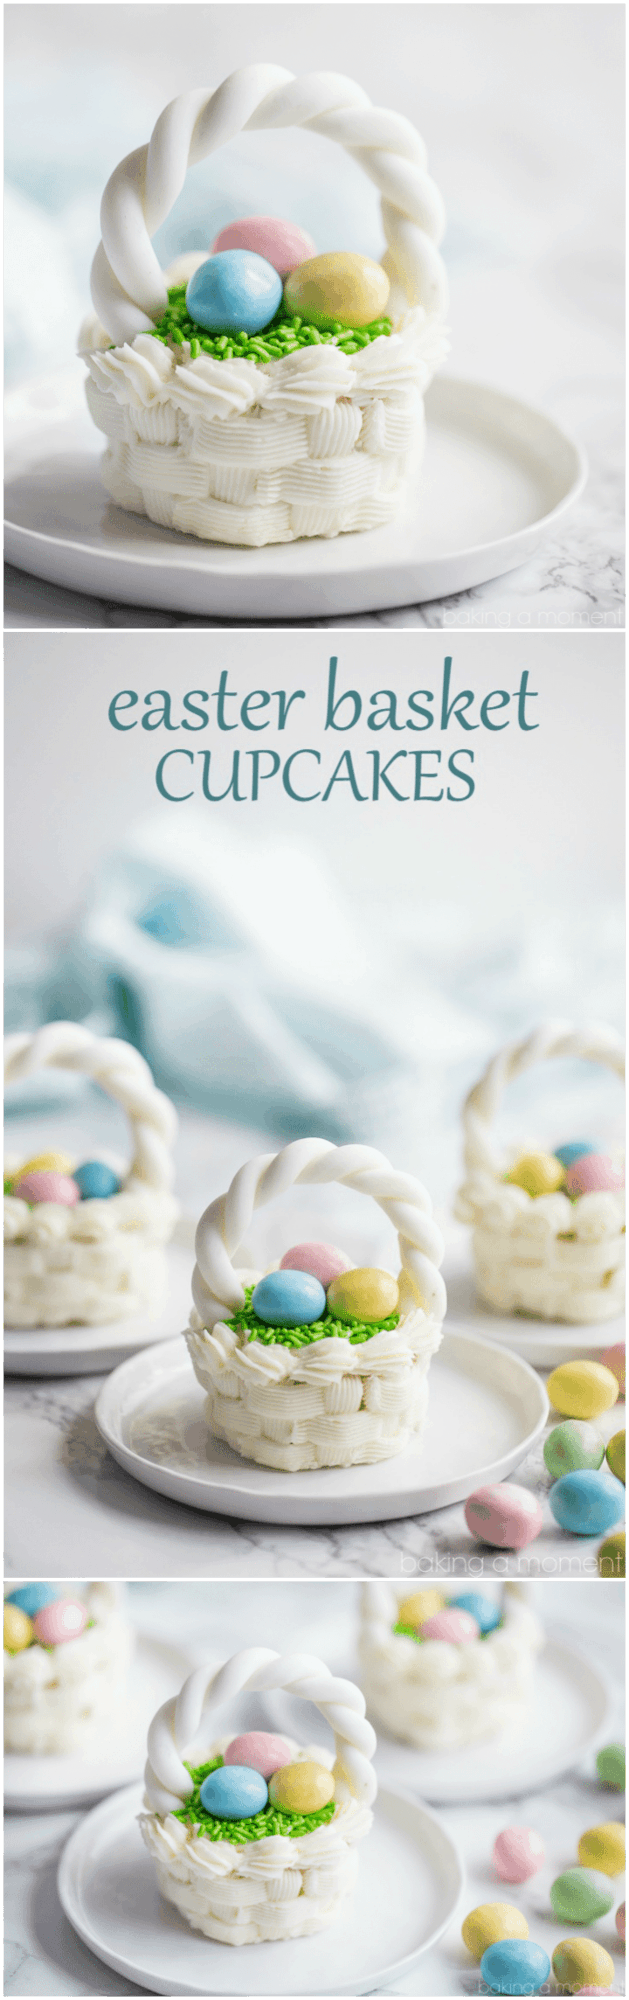 Easter Basket Cupcakes-- So cute and surprisingly simple to make. What a fun spring project to do with kids or grandkids!